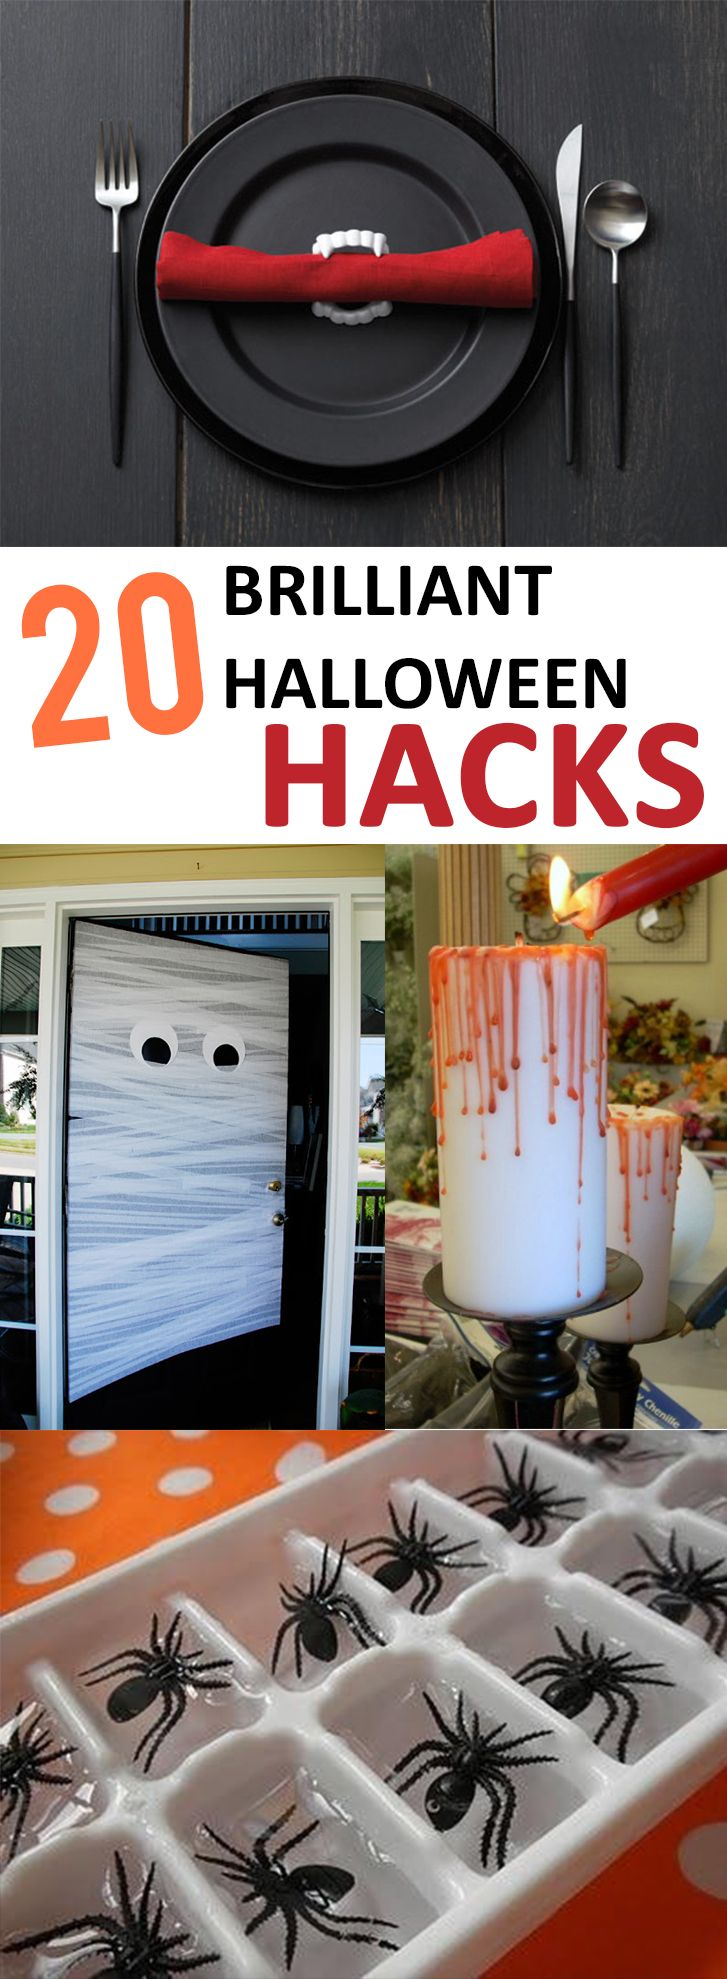 Best 25+ Halloween party decor ideas on Pinterest | Halloween ...